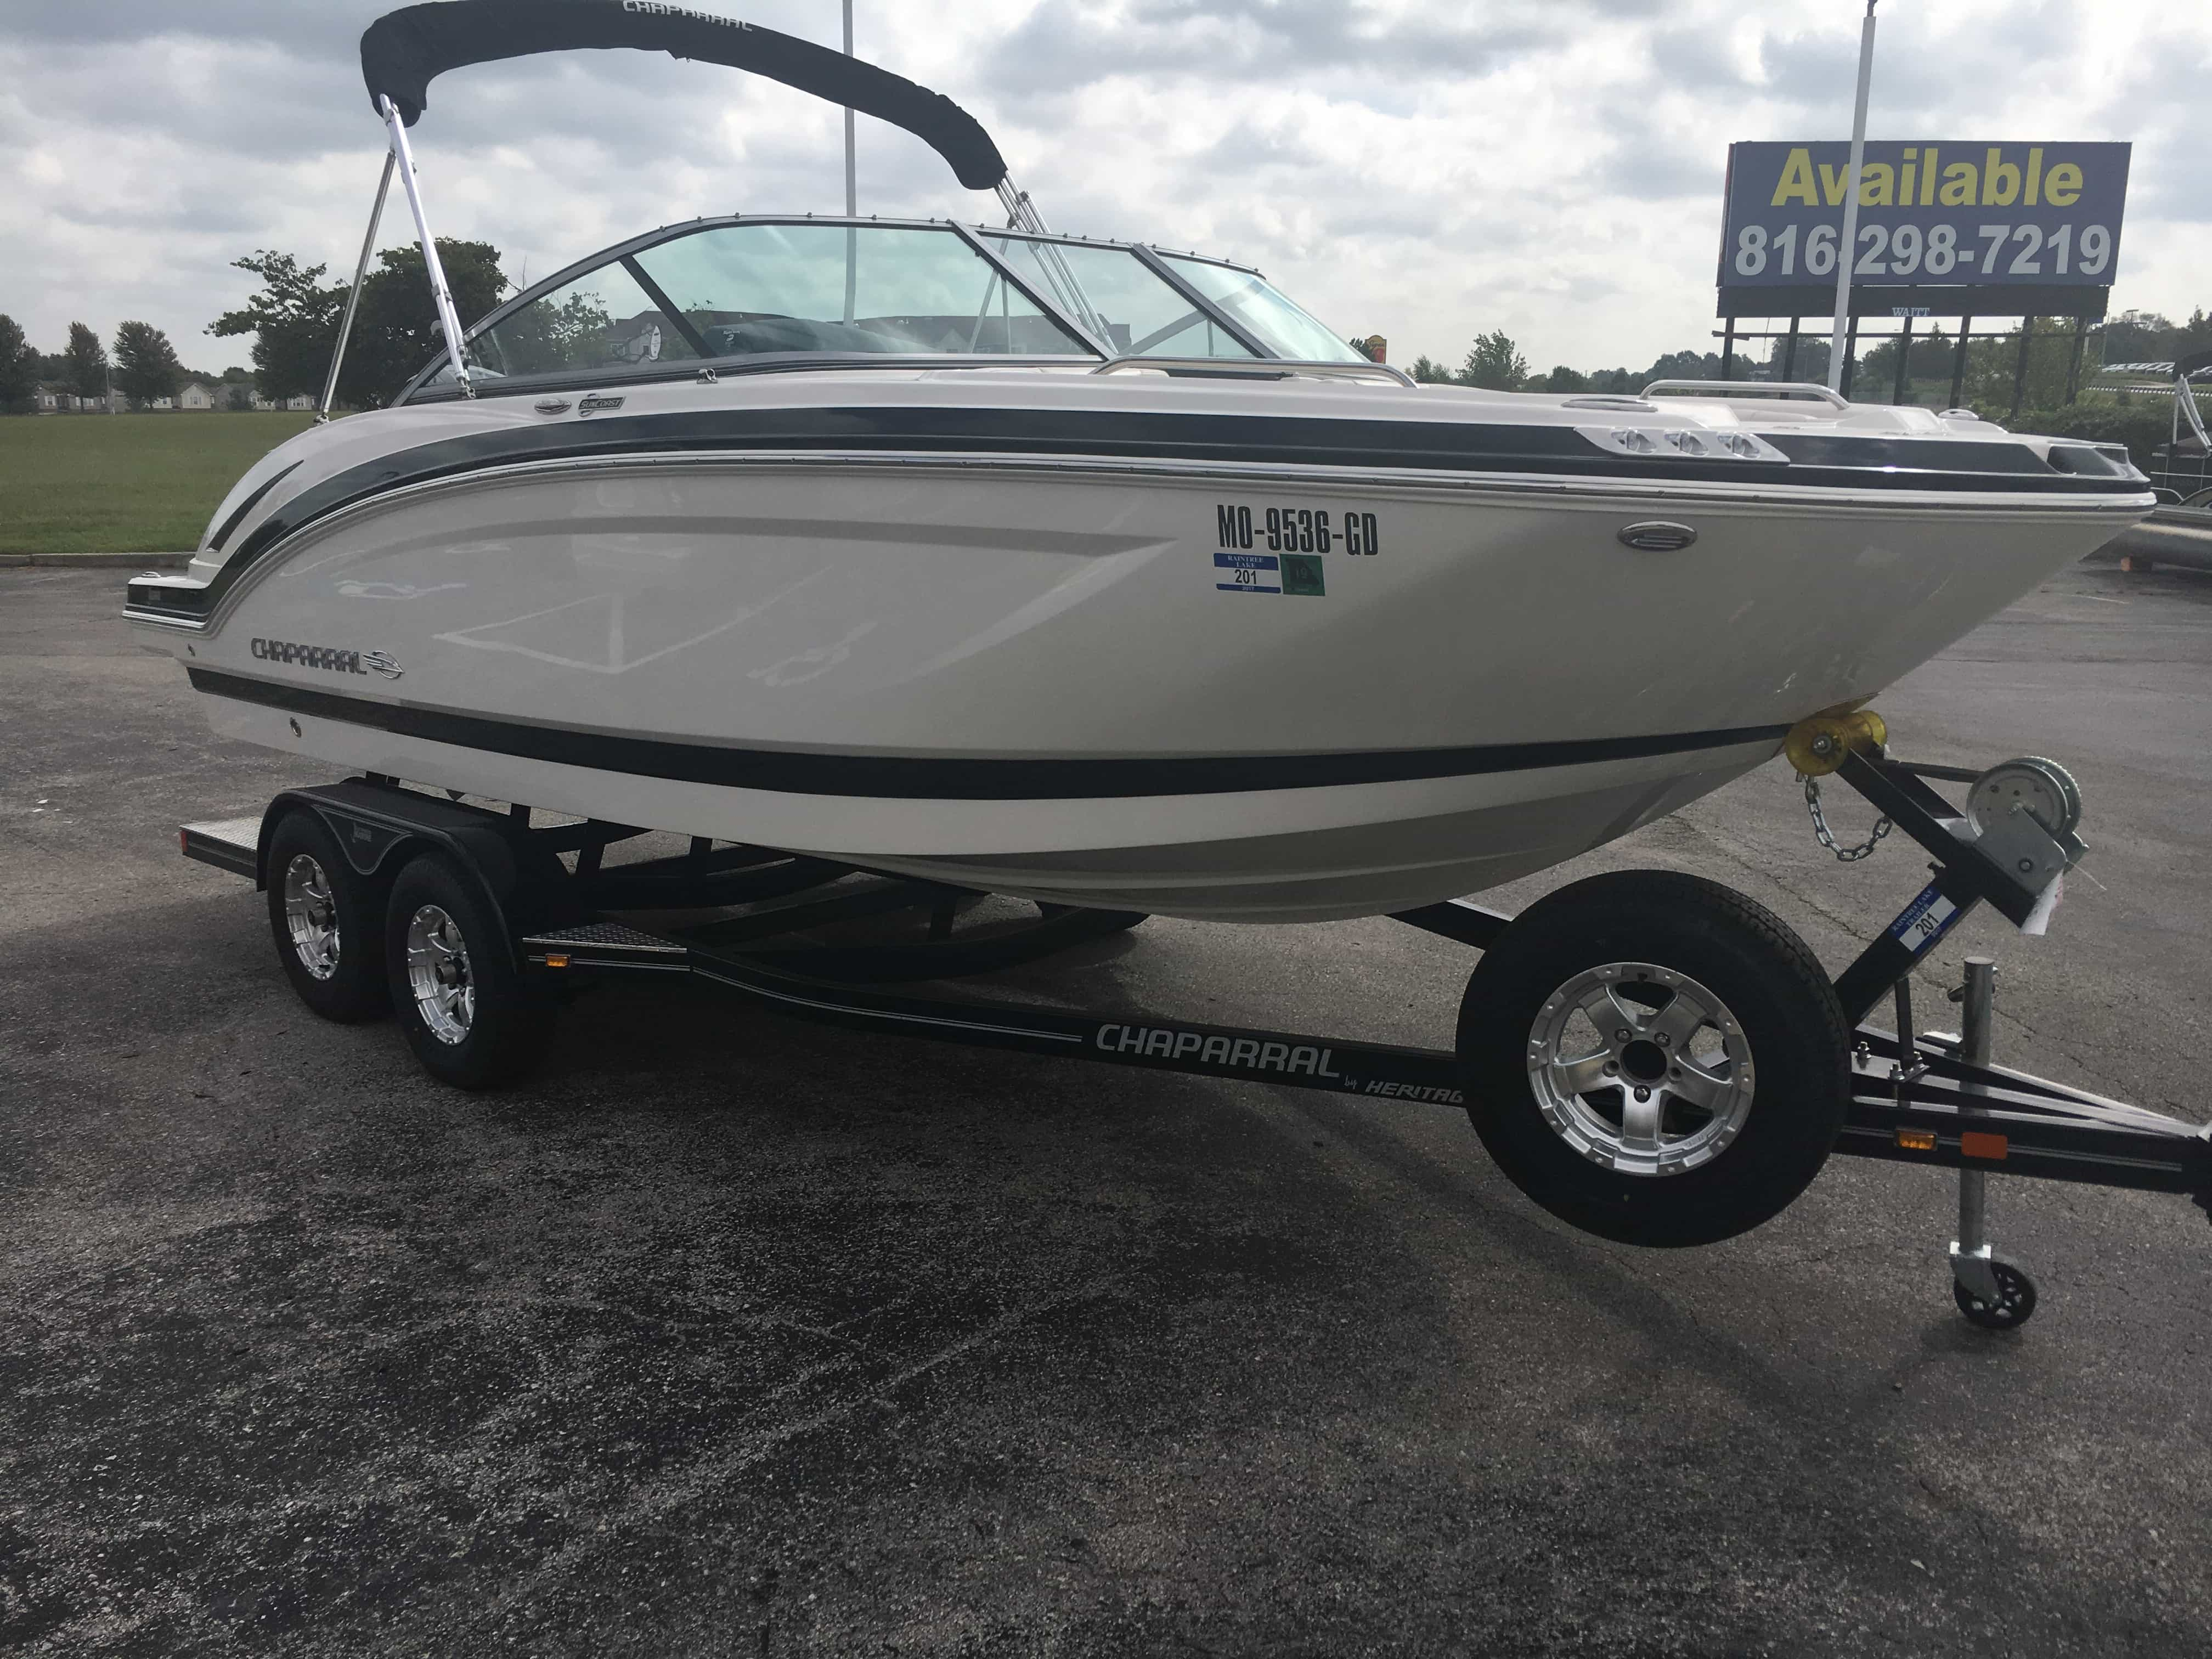 USED 2016 CHAPARRAL 210 SUNCOAST .